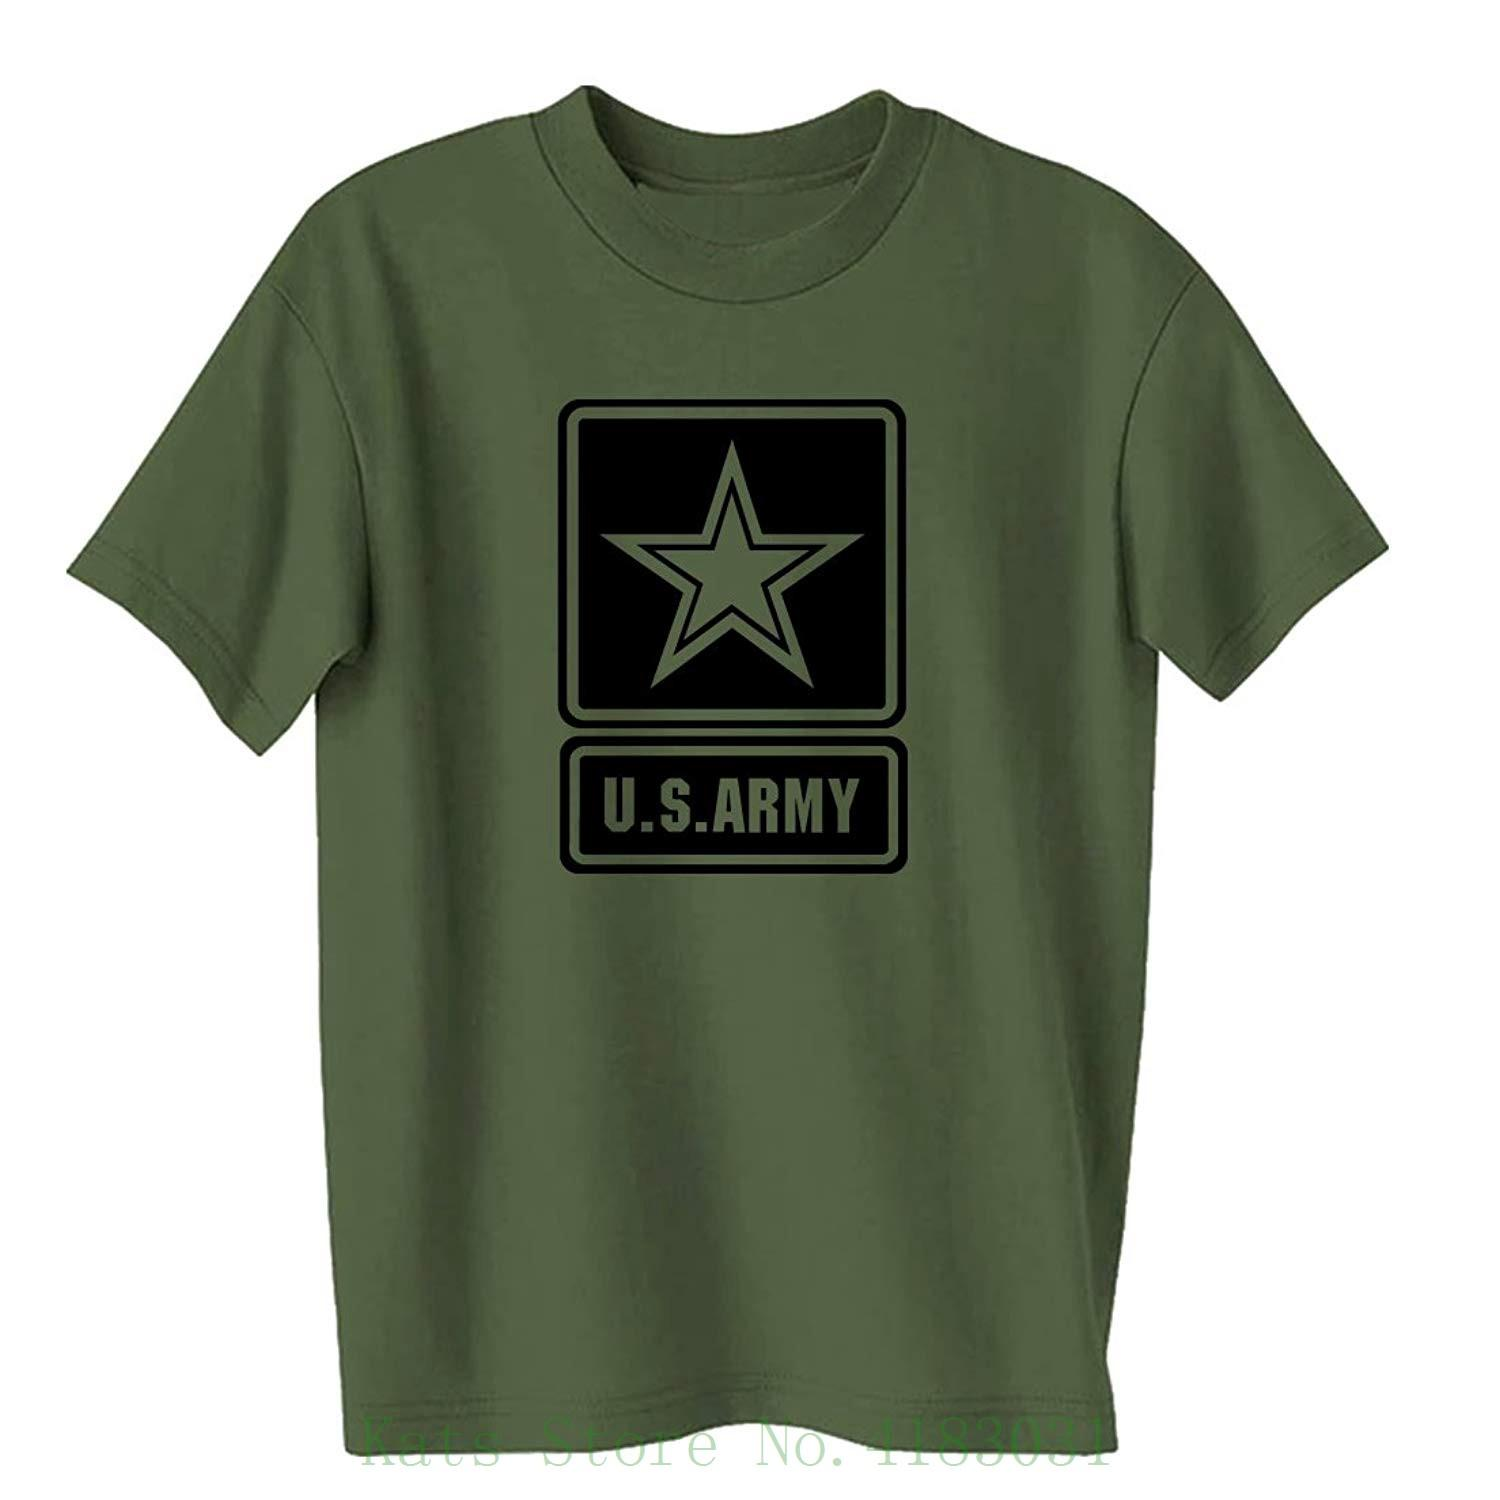 Us Army Star Modern Logo Short Sleeve T Shirt In Military Green Tshirt  Summer Style Fashion Men T Shirts Best Tee Shirt Sites Online Funky T Shirts  From ... a465be0db6e